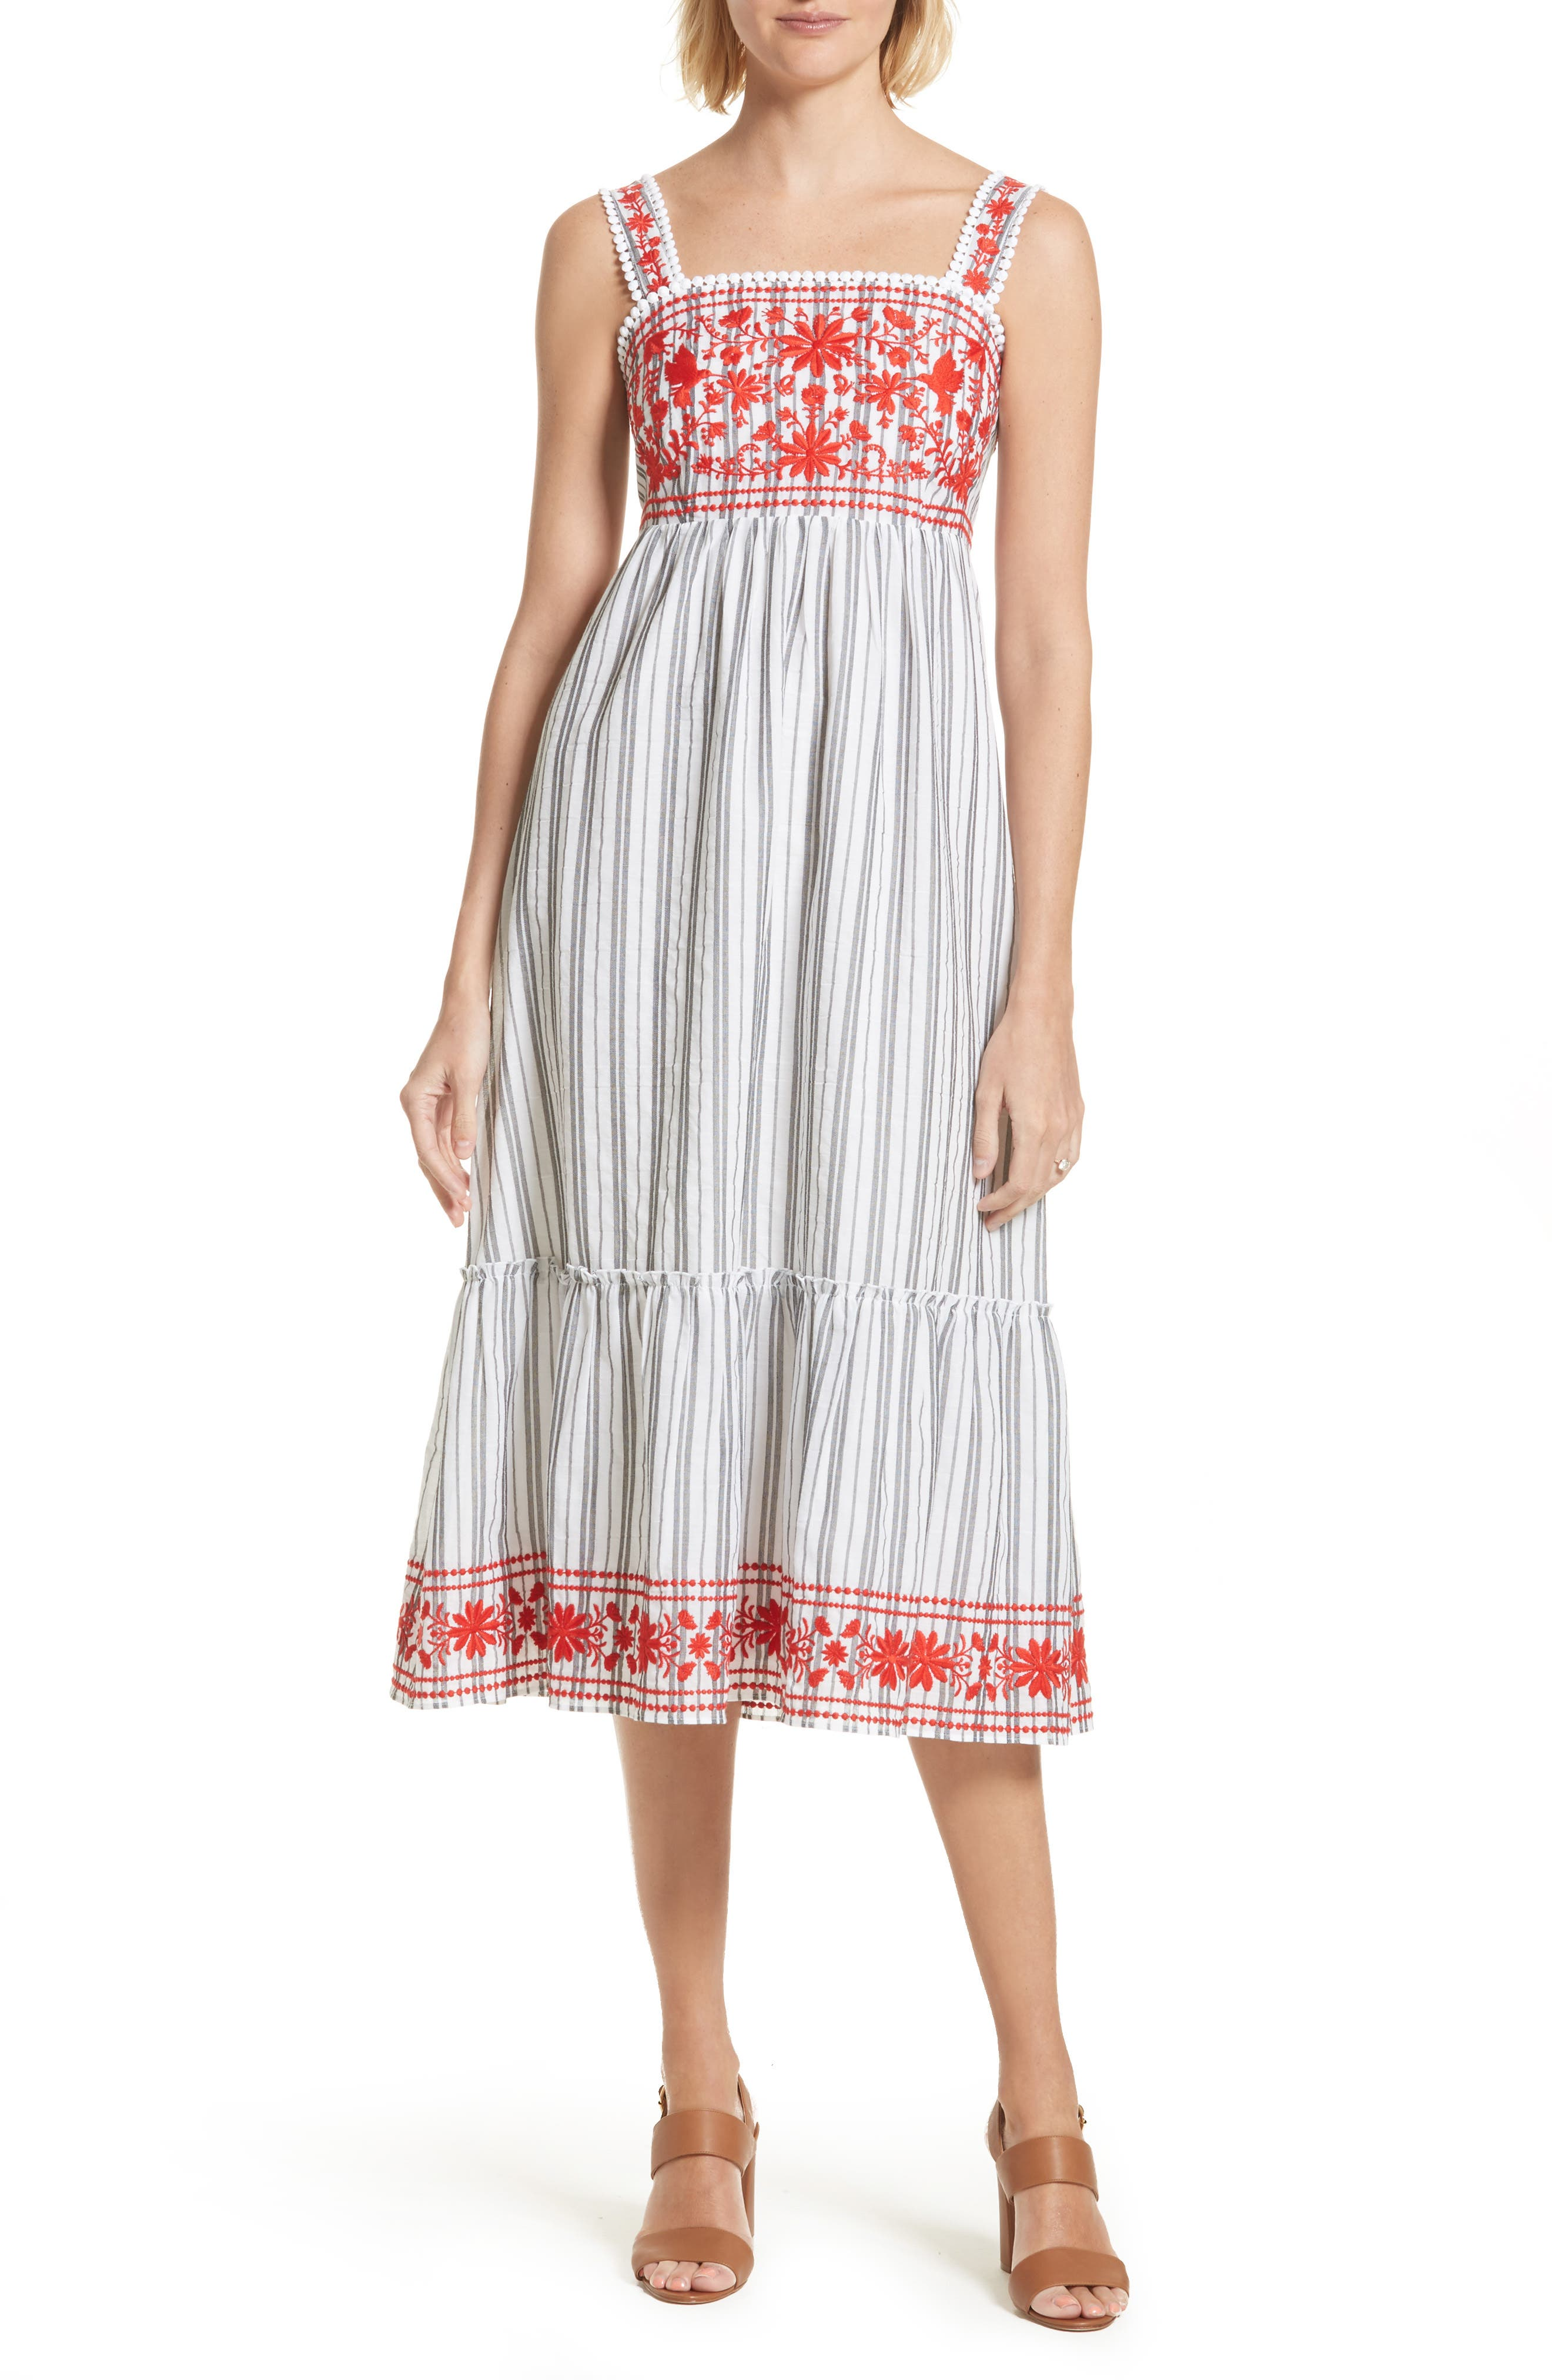 embroidered sundress,                         Main,                         color, 146